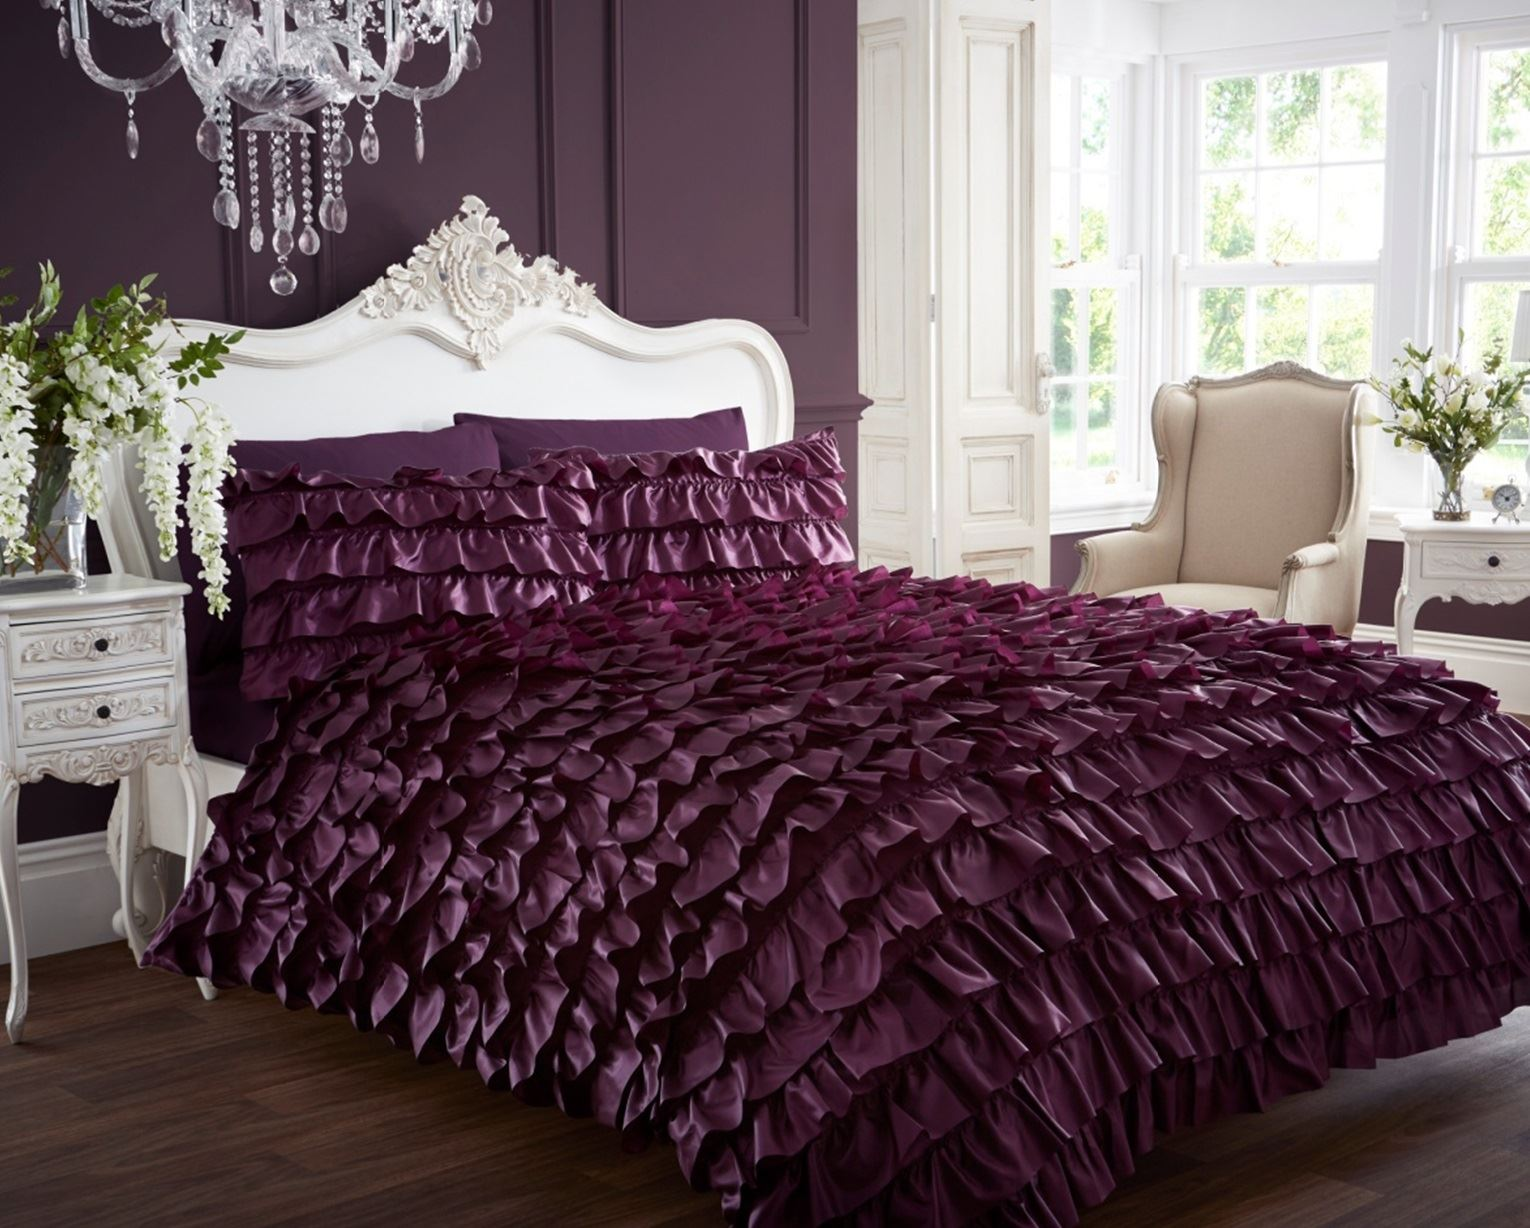 Black and purple bed sheets - Flamenco Dress Can Quilt Duvet Cover P Case Bedding Bed Purple Black Comforter Set